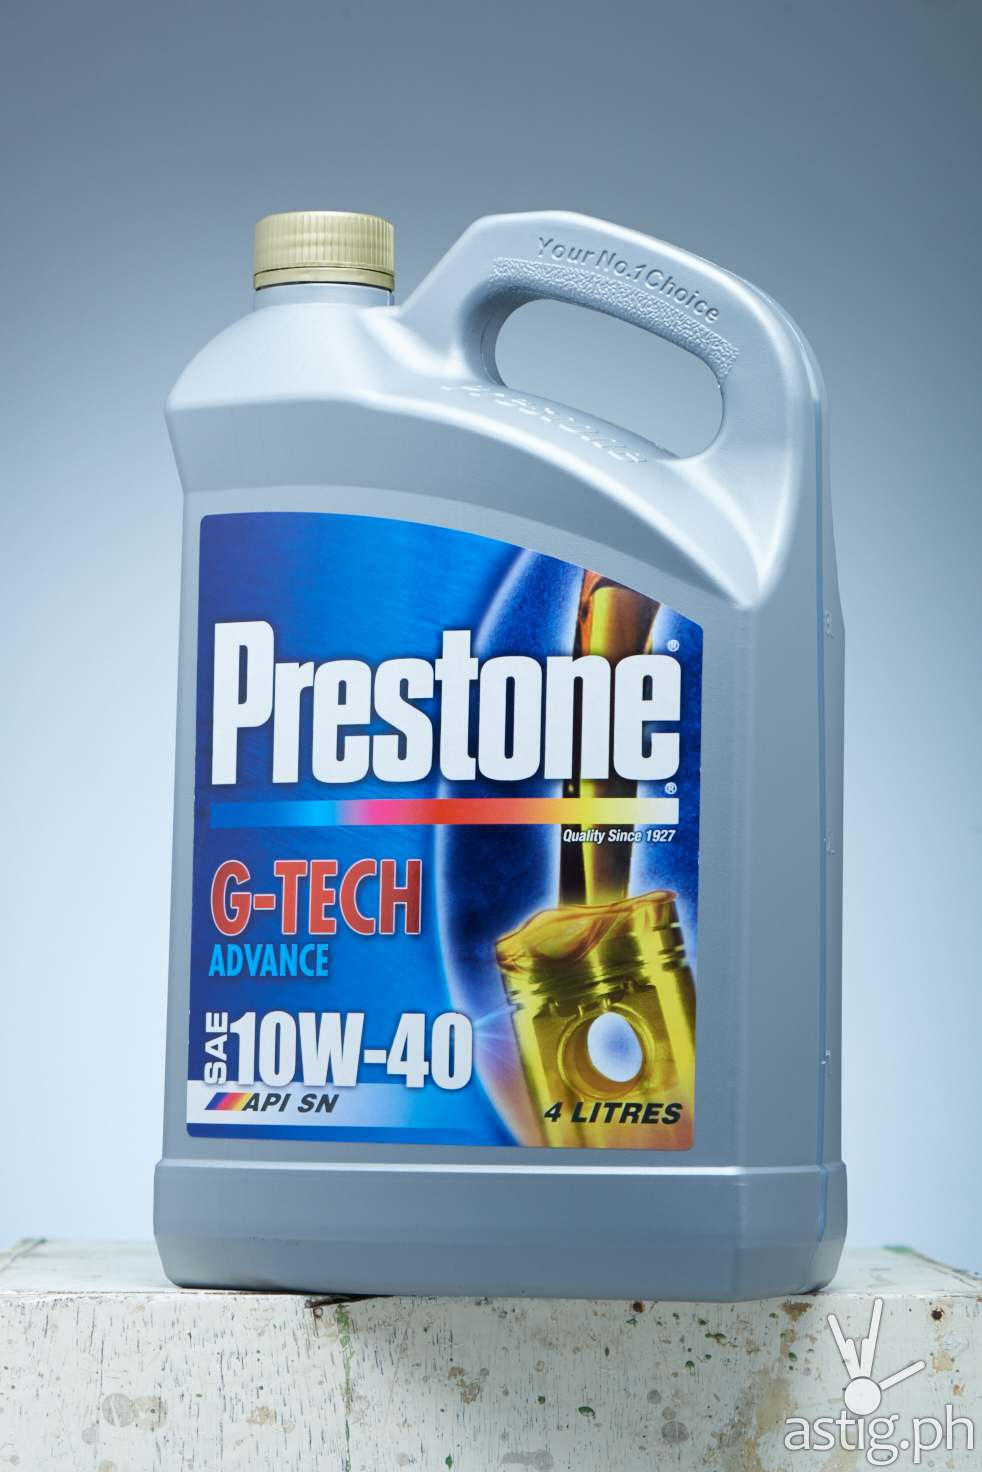 Prestone-Motor-Oil-G-Tech-Advance-Mineral-and-Syntethic-Blend_4-Liters.jpg